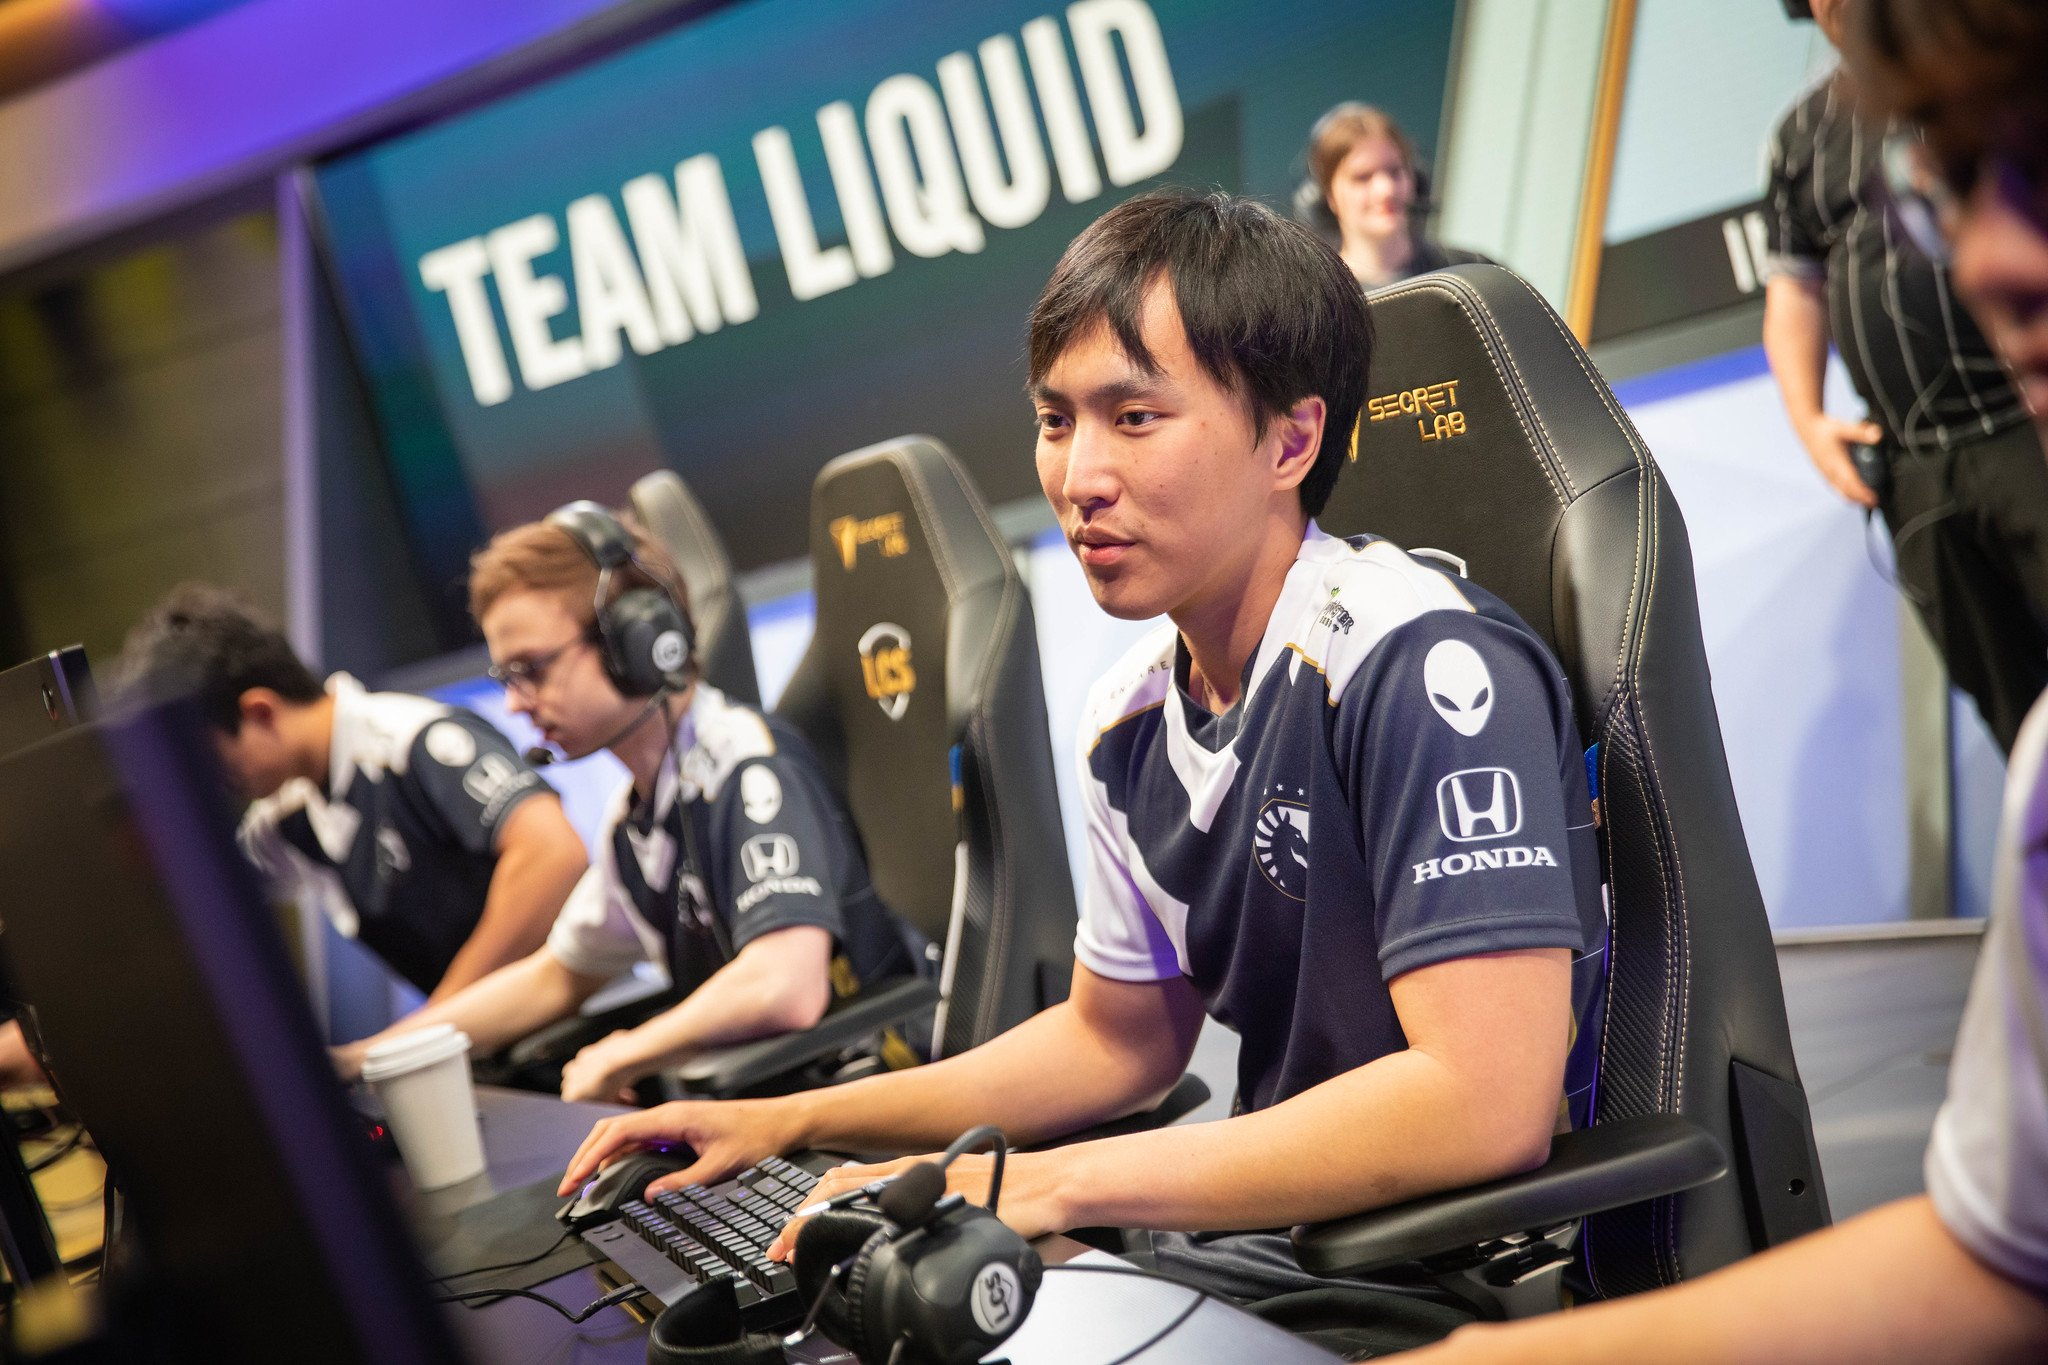 LCS – Team Solo Mid's Doublelift Gave His Insight Following Close Win Against Golden Guardians